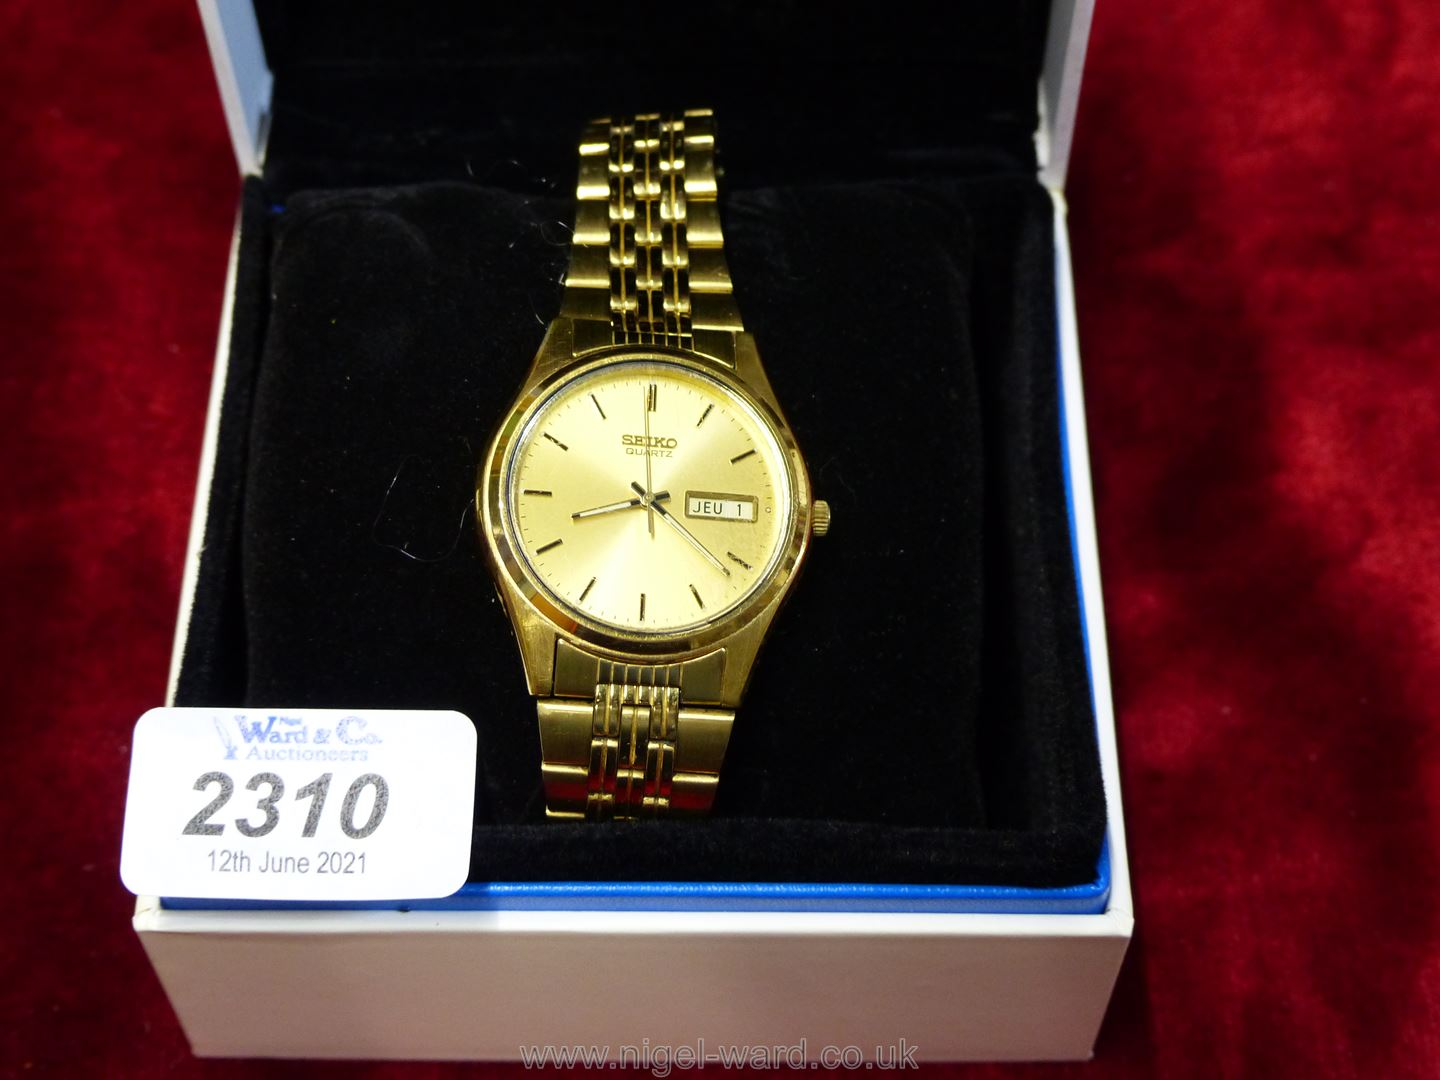 A gents gold coloured Seiko quartz watch, as new, boxed.